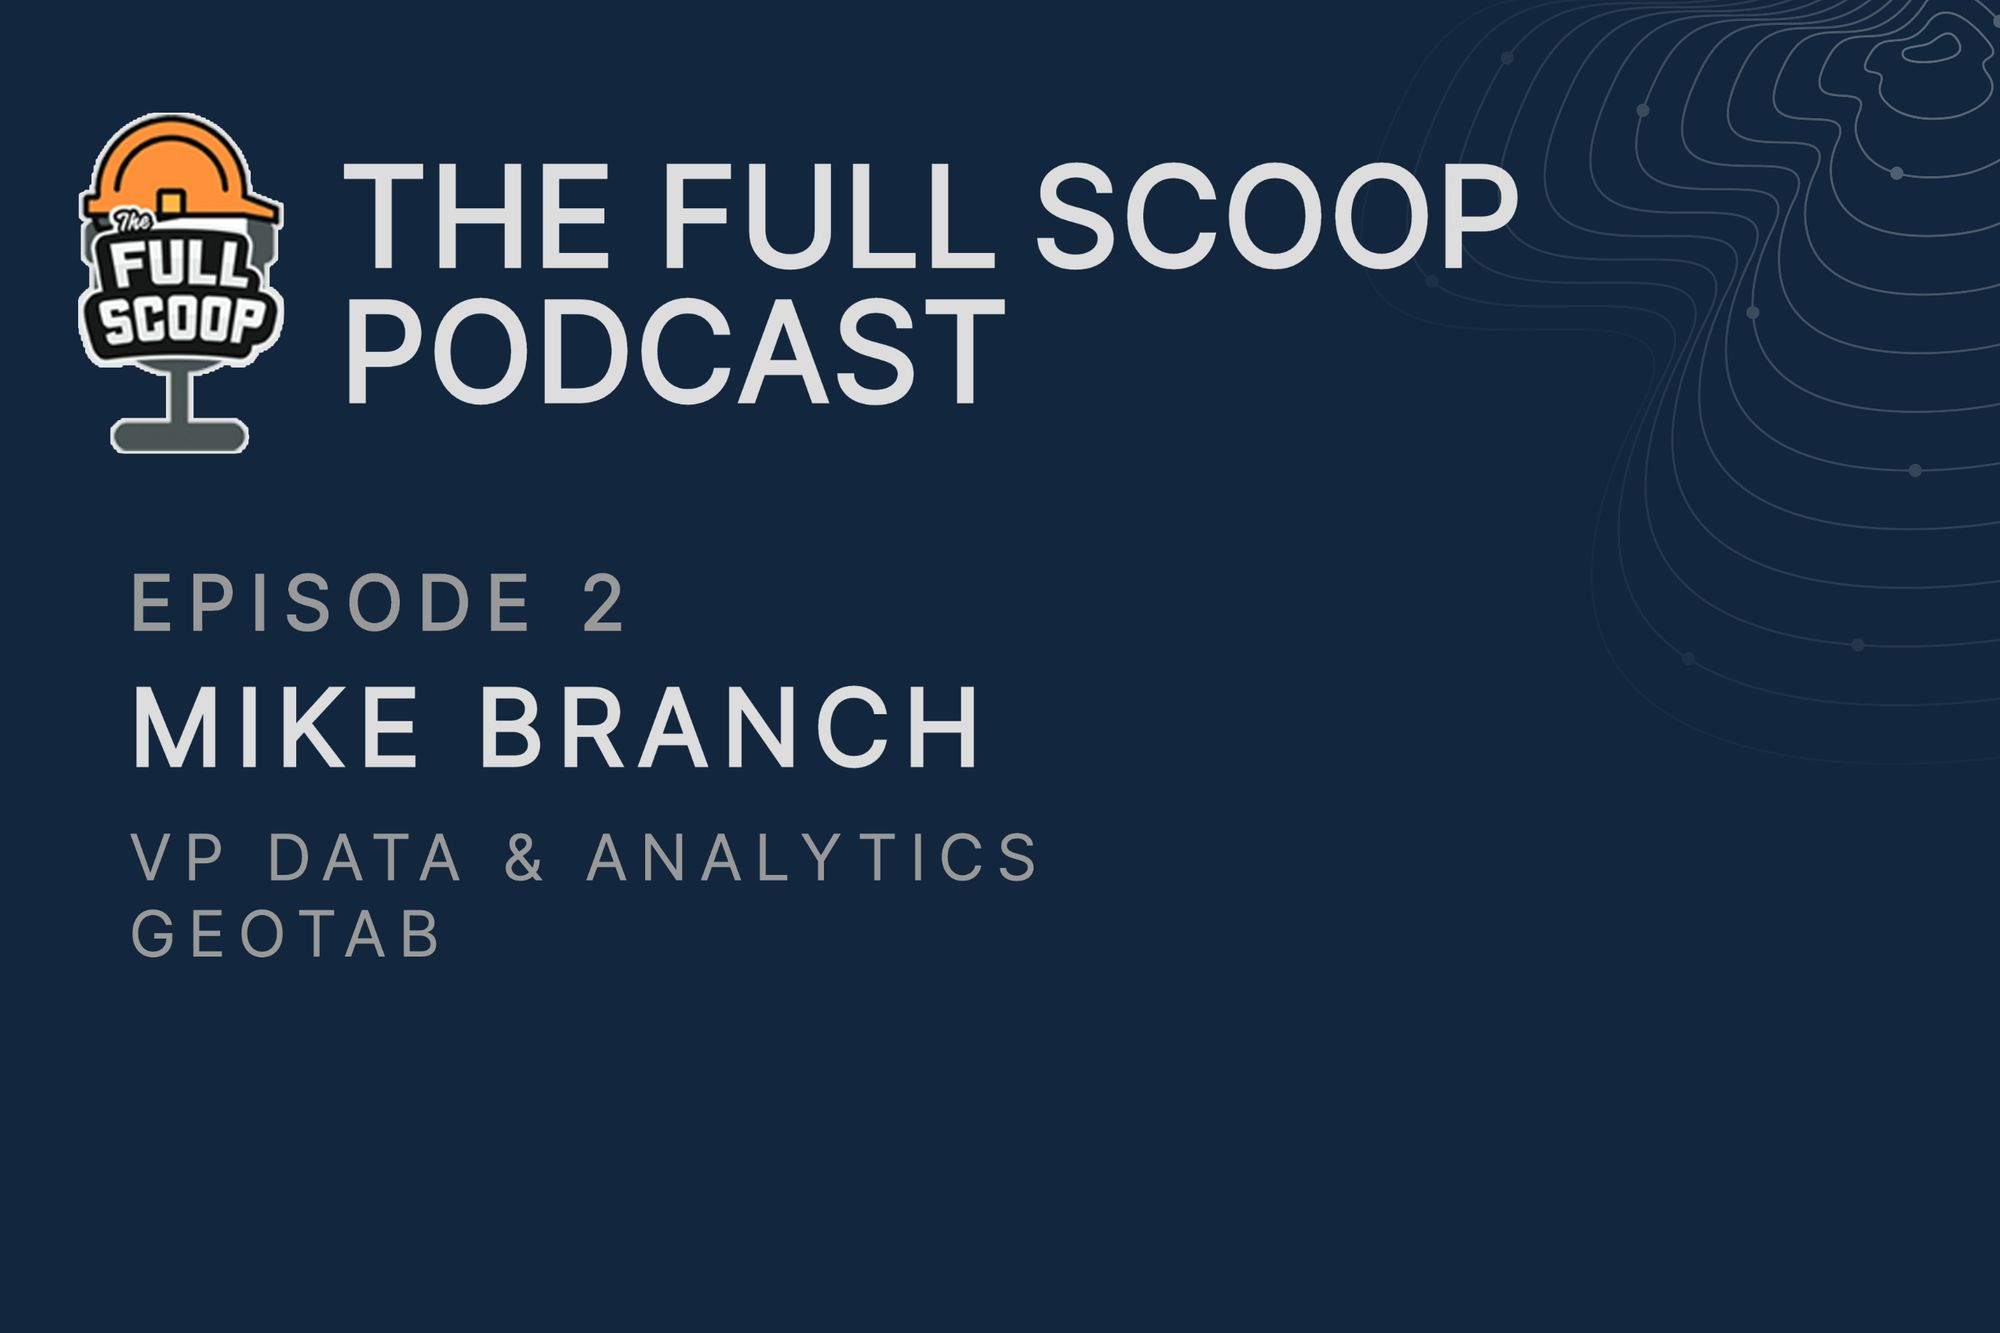 Episode 2: Mike Branch, VP of Data & Analytics at Geotab